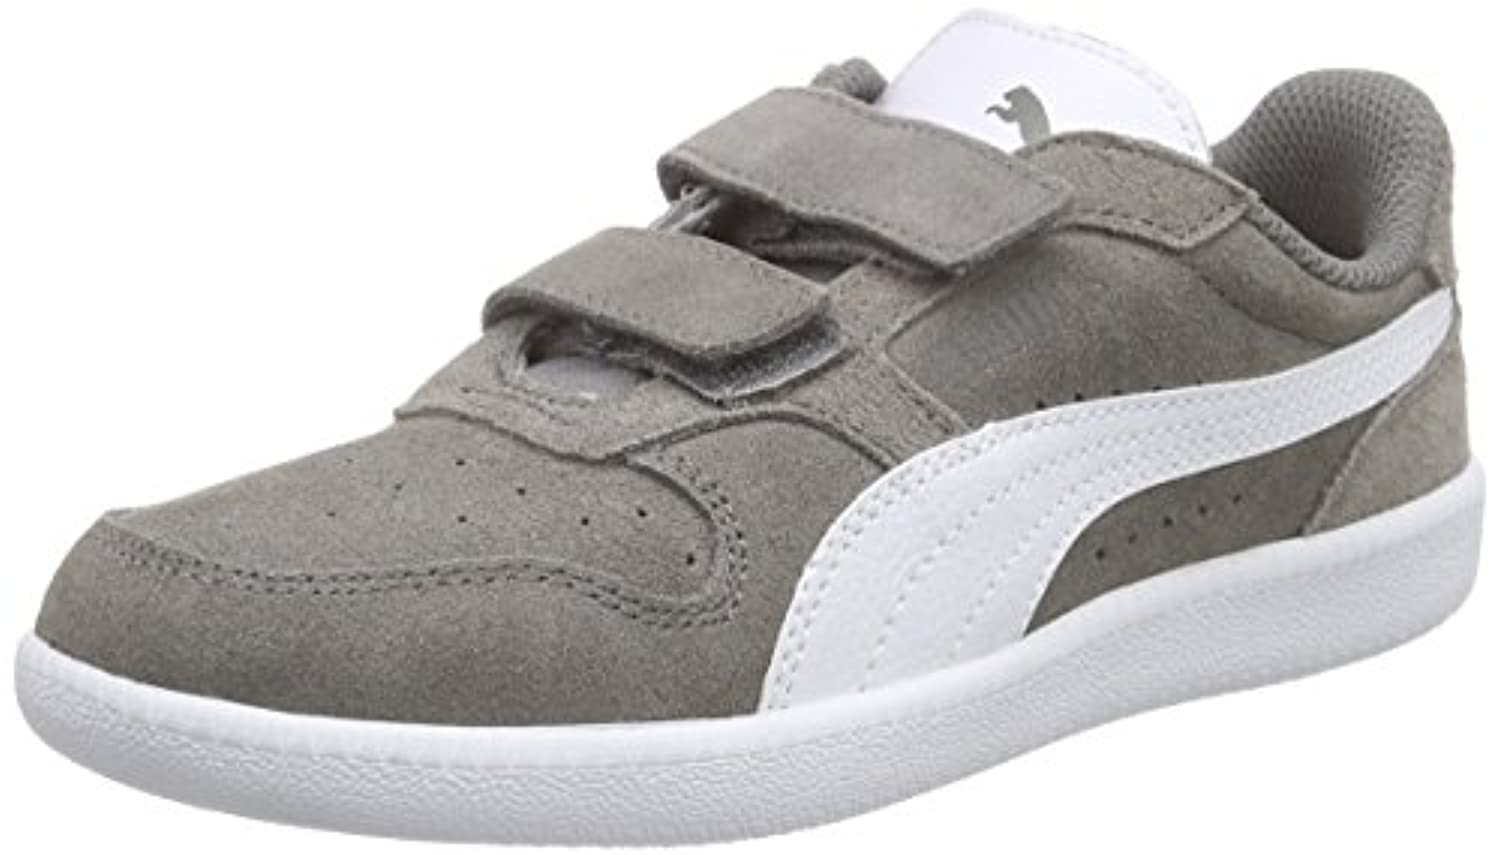 Puma Unisex Kids' Icra Trainer SD V Inf Low-Top Sneakers Black Size: 4 Child UK